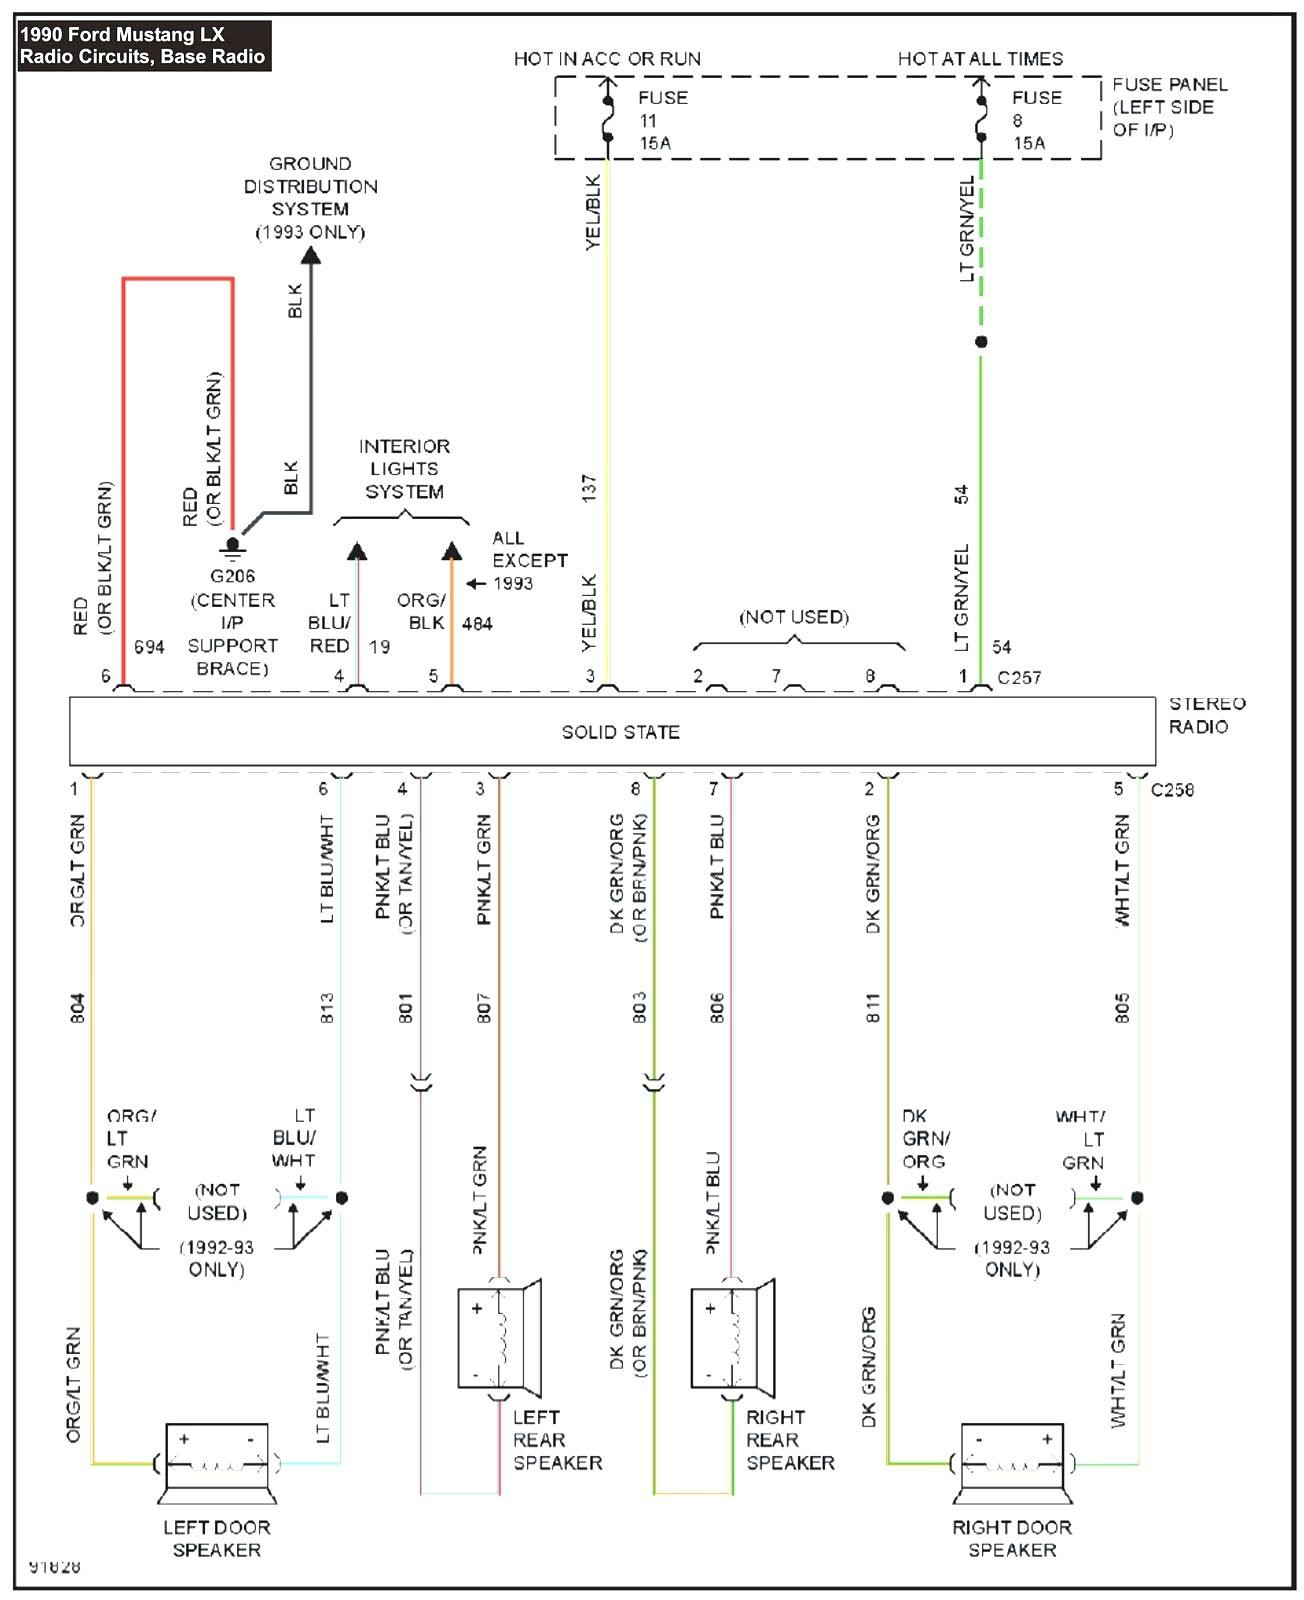 Cf Moto 150 Wiring Diagram - Wiring Schematics Jazz Eurosd Cc Scooter Wiring Diagram on